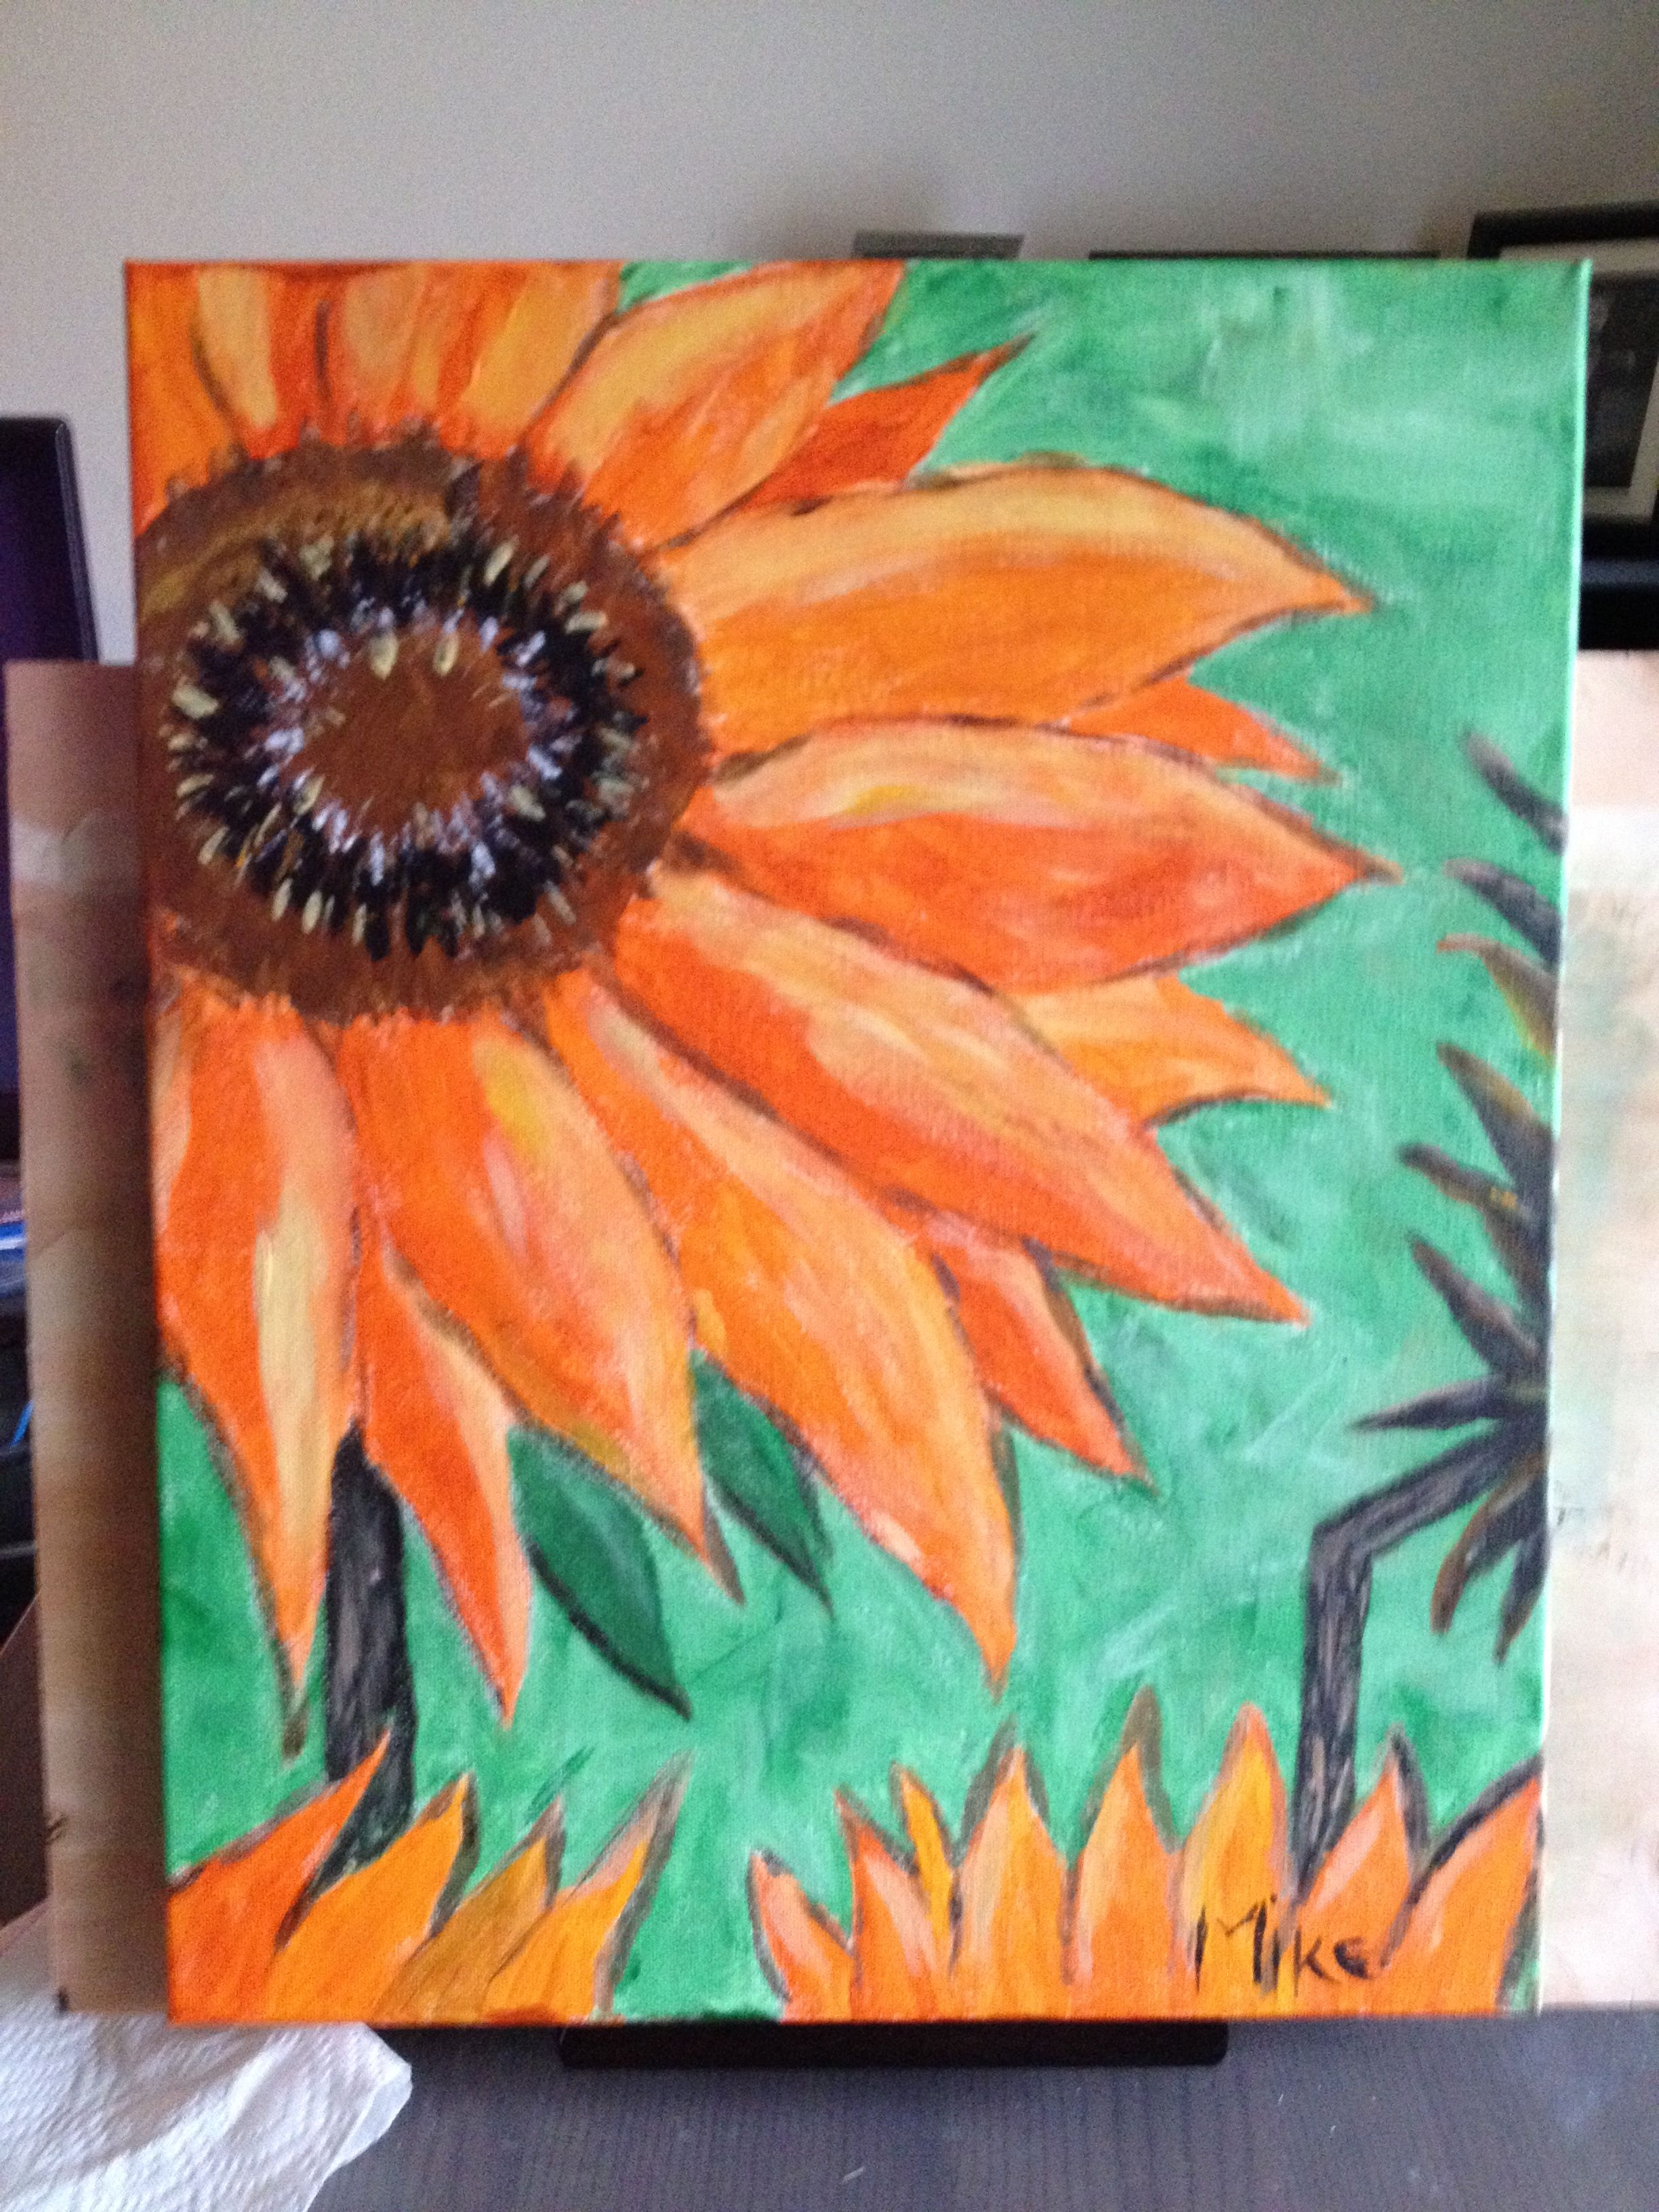 Van Gogh Sunflowers Acrylic on canvas (16x20) Early Art Social class.  Nice image with good colors but I prefer the later paintings.